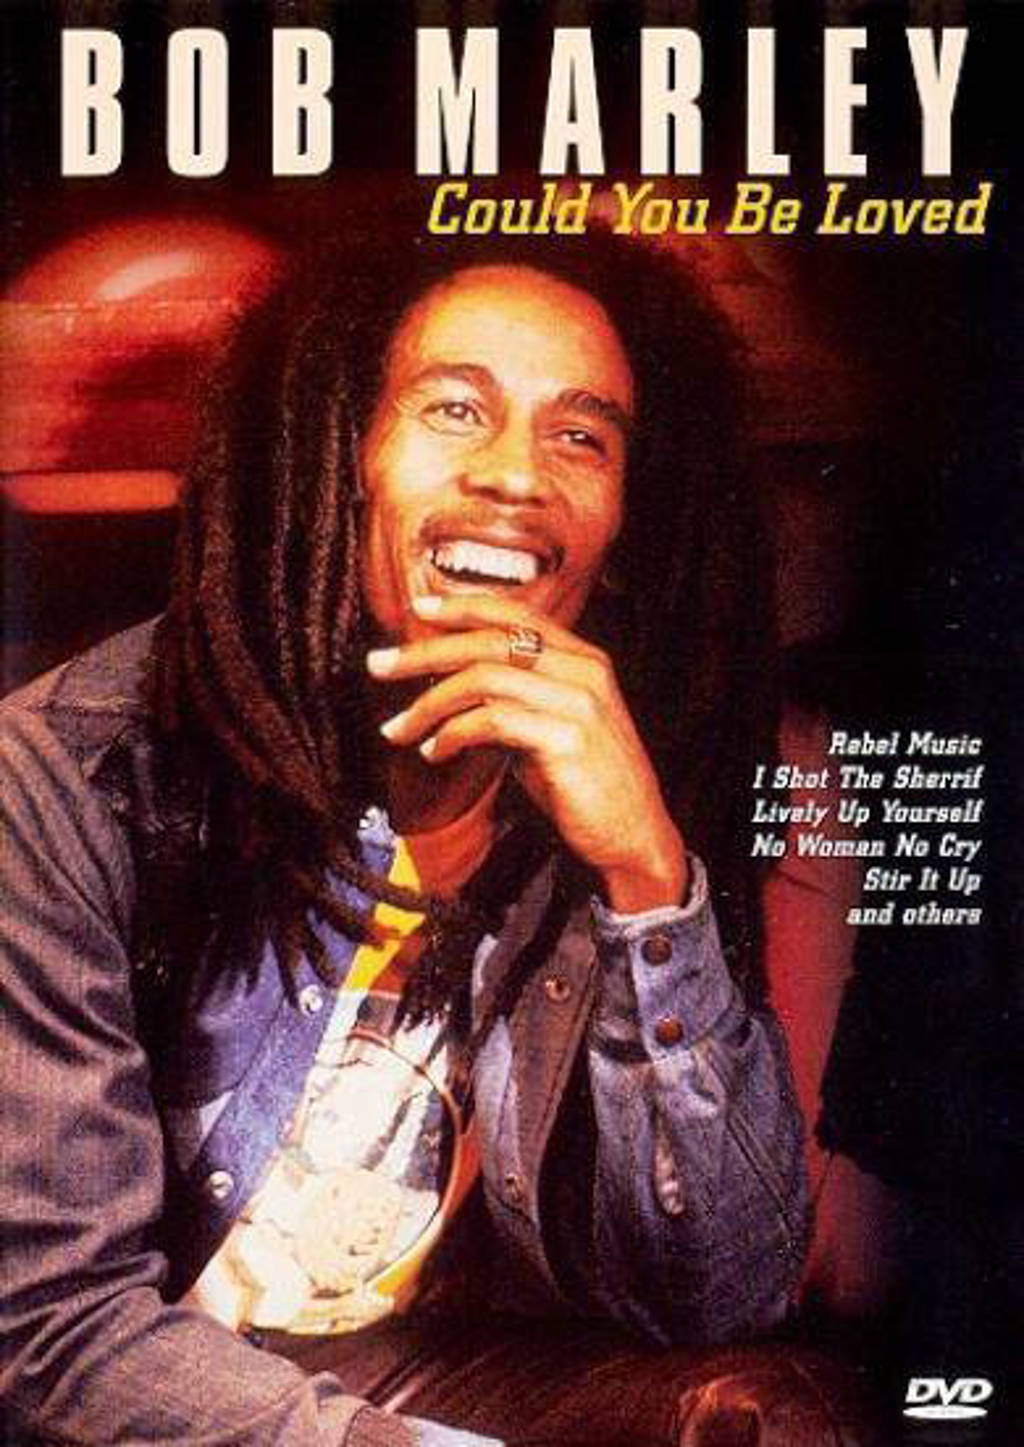 Bob Marley - could you be loved (DVD)